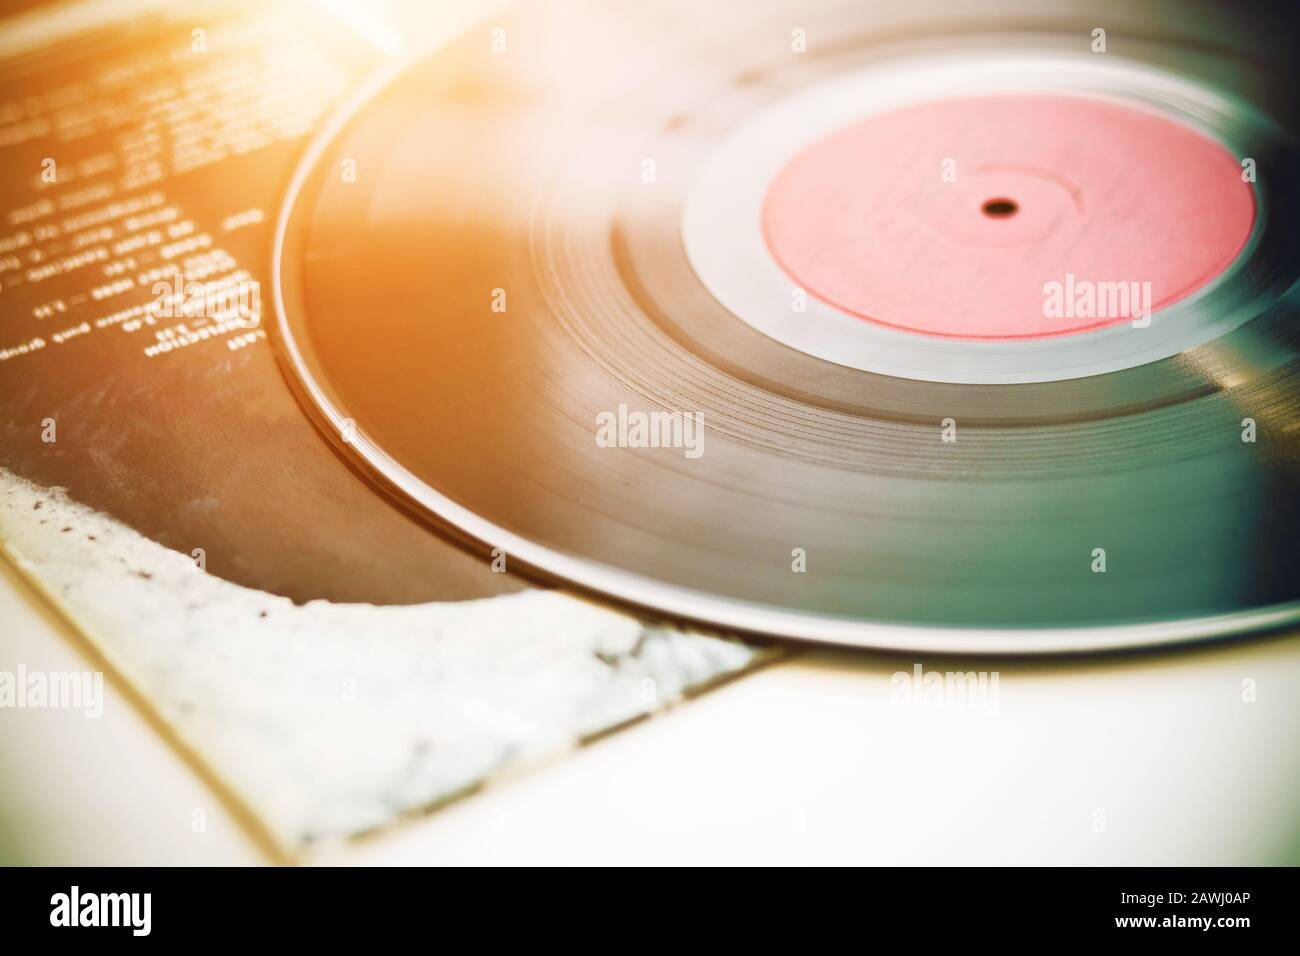 A vintage musical black vinyl record lies on the paper cover of a music album, illuminated by sunlight. Stock Photo